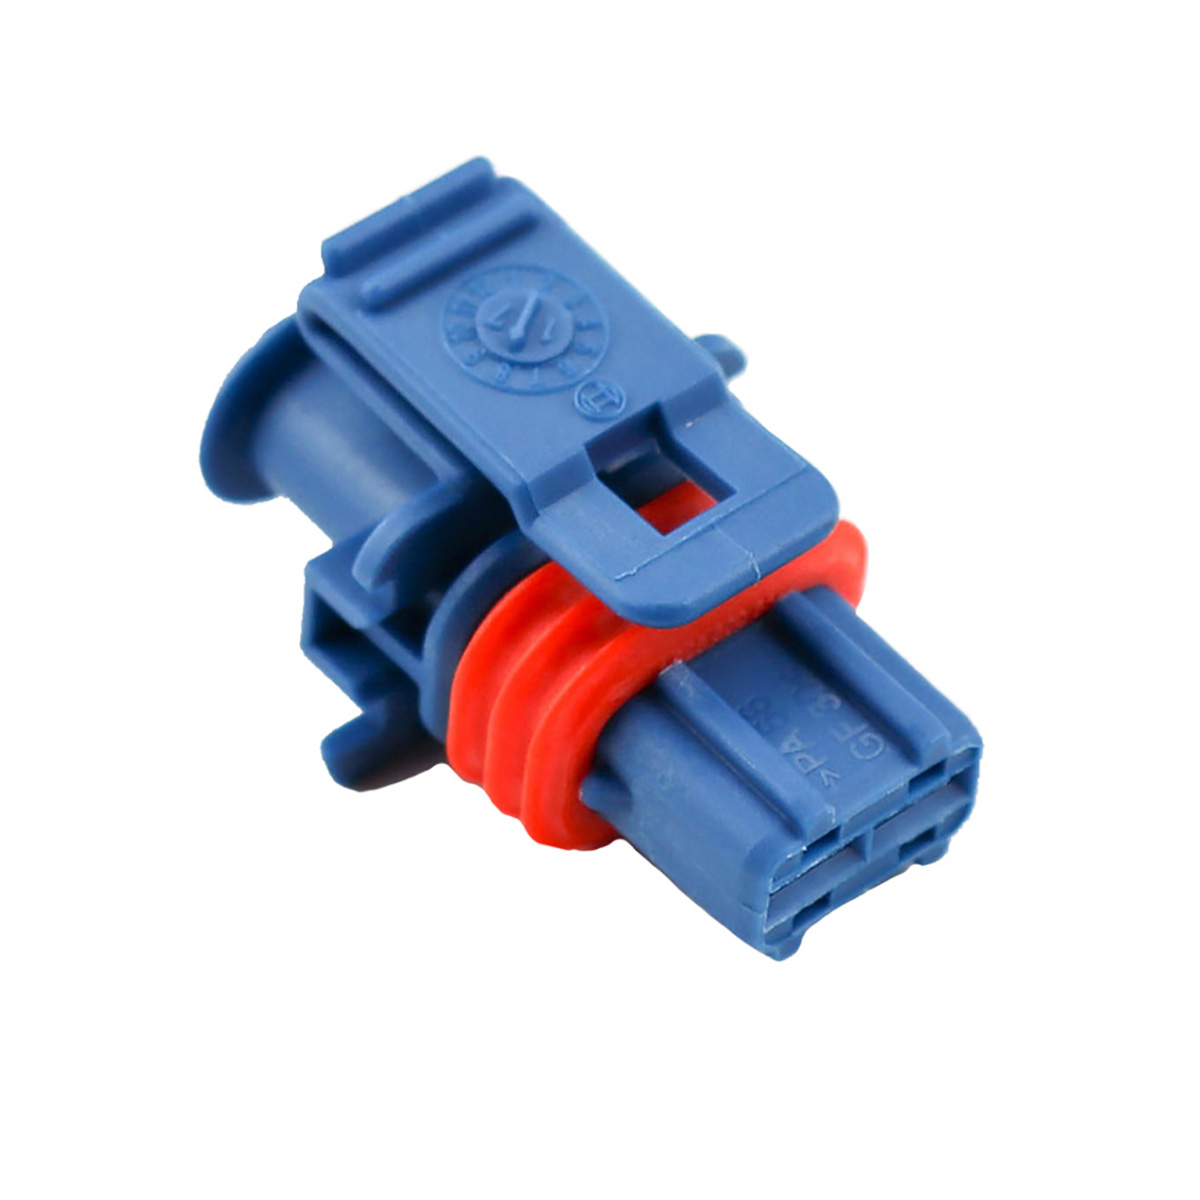 Bosch Compact Connector